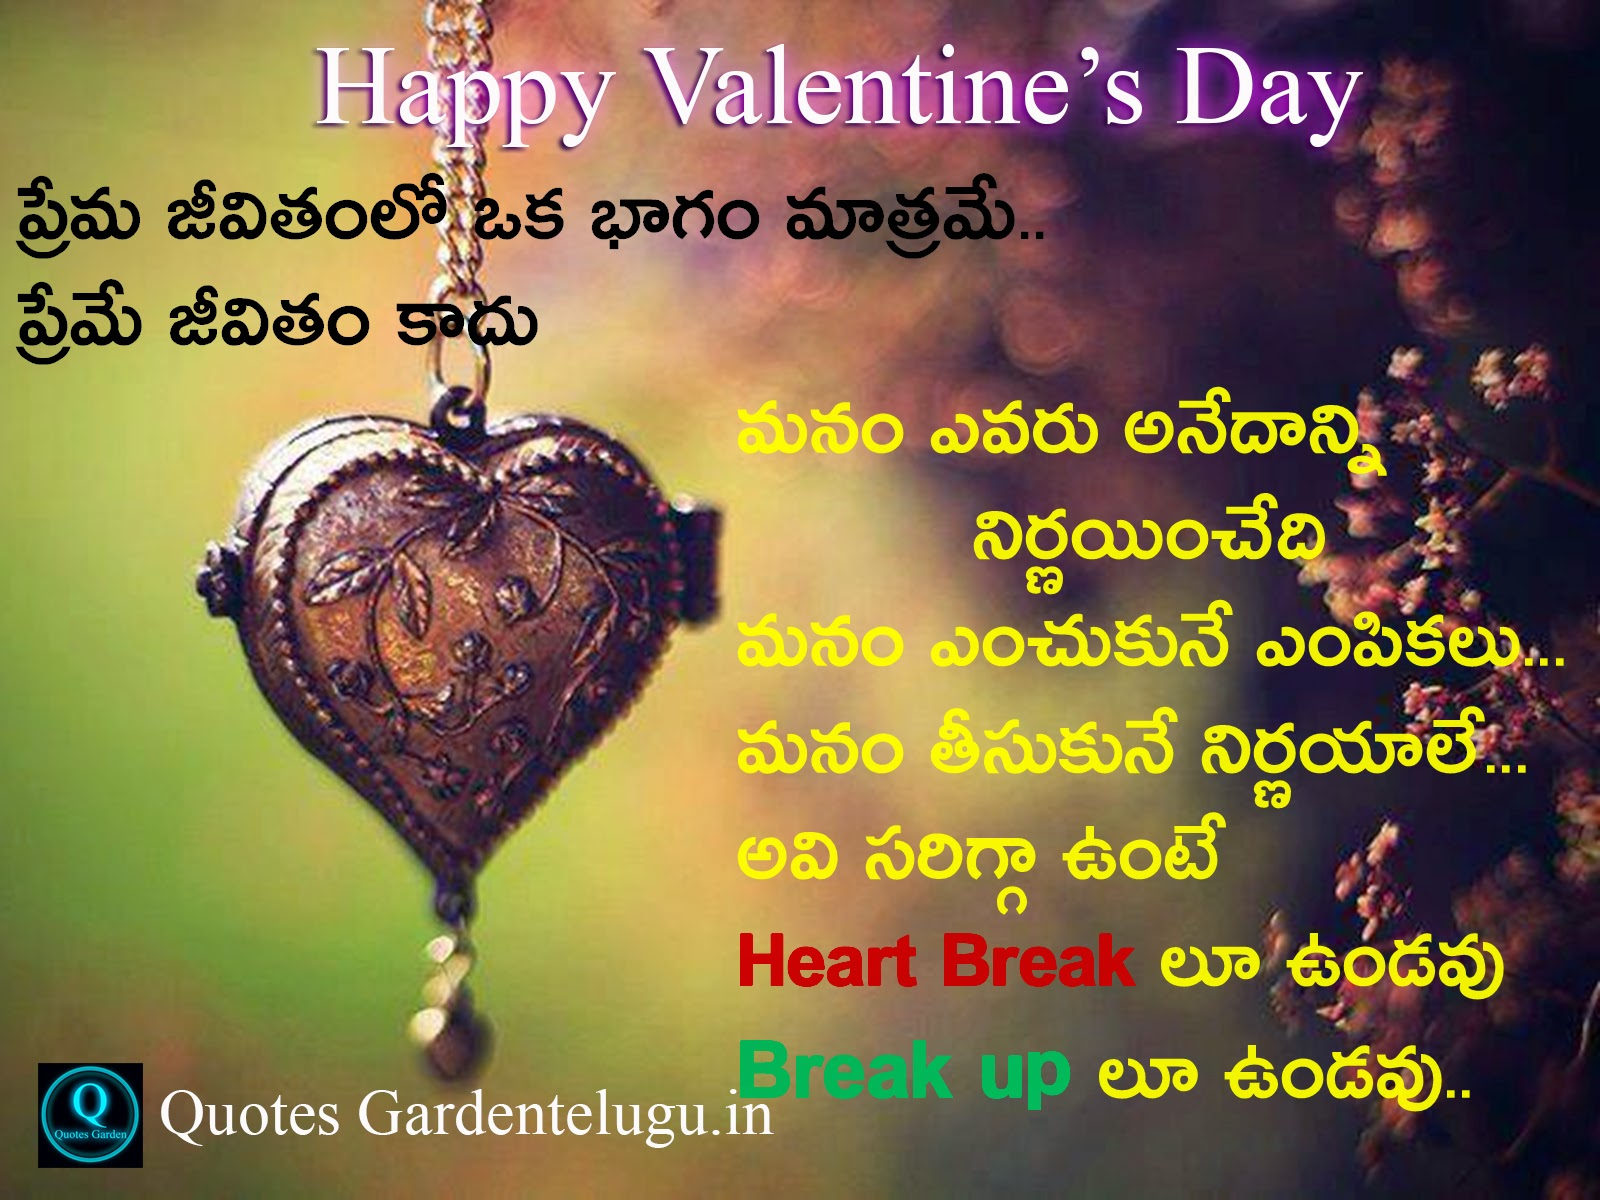 valentines day images with quotes hd - Valentine s Day Special Love Quotes photoes